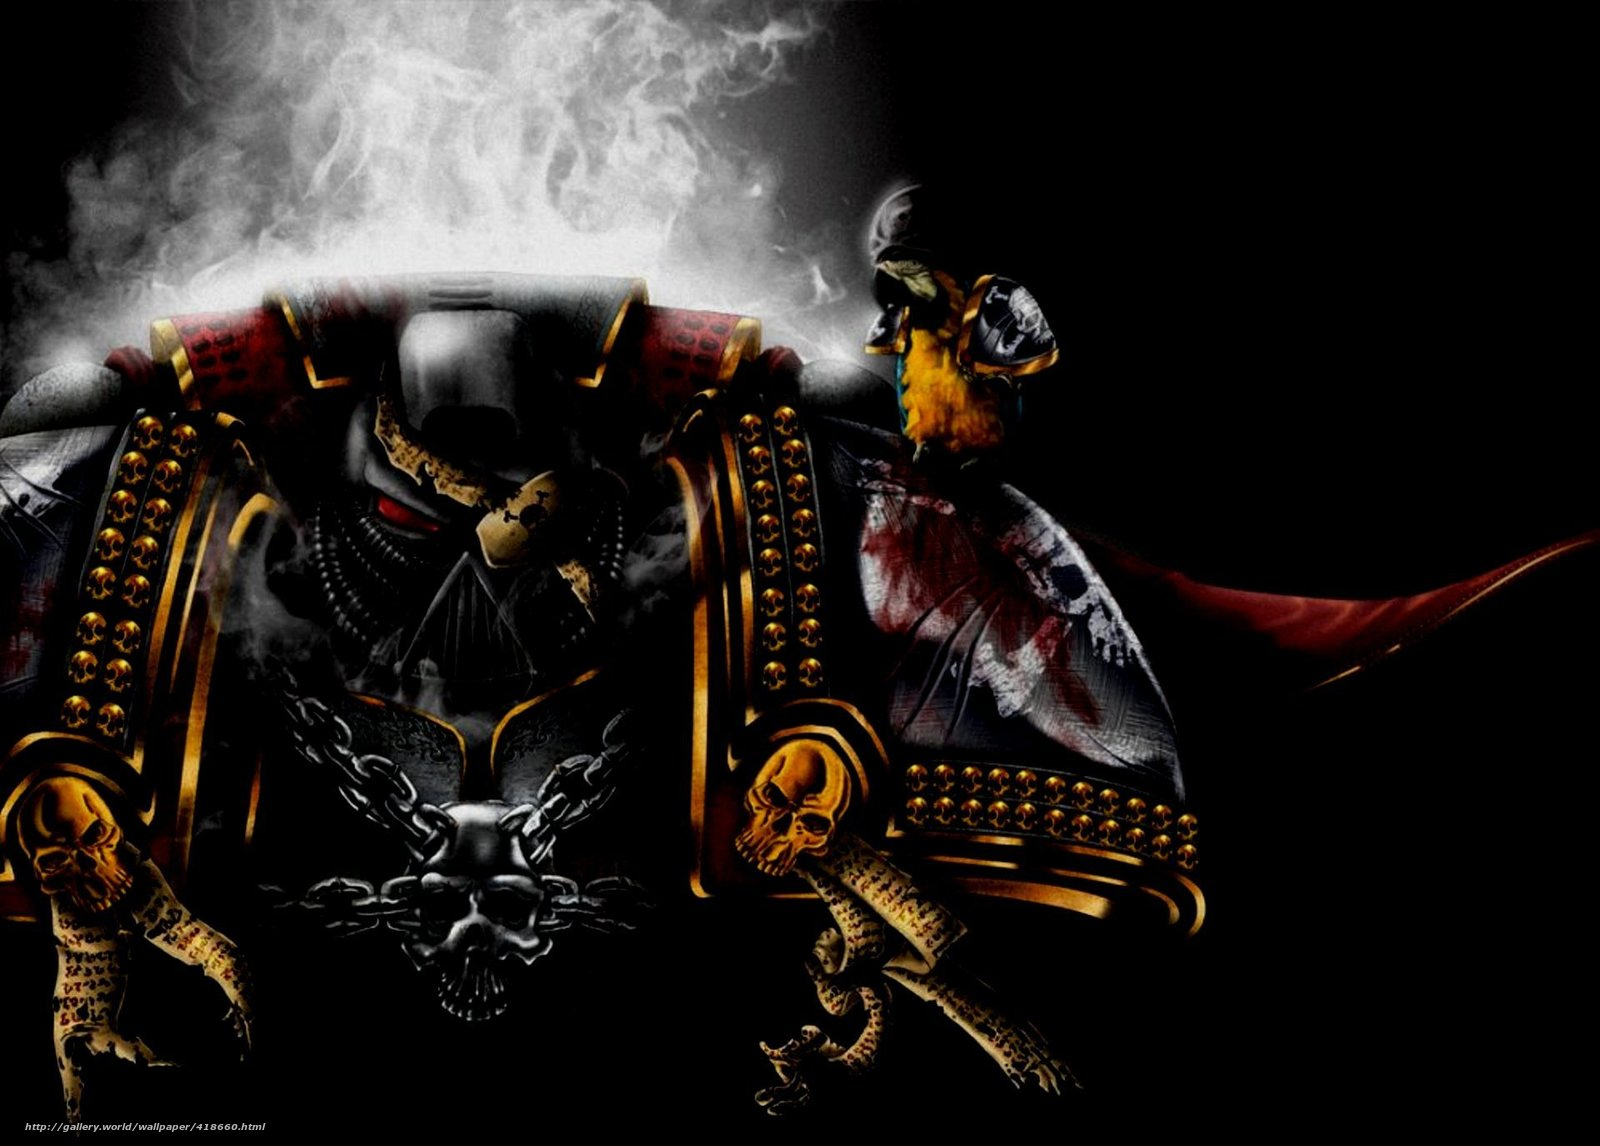 warhammer Official games workshop merchandise from warhammer art limited runs of 250 hand numbered special editions check out our collection now.